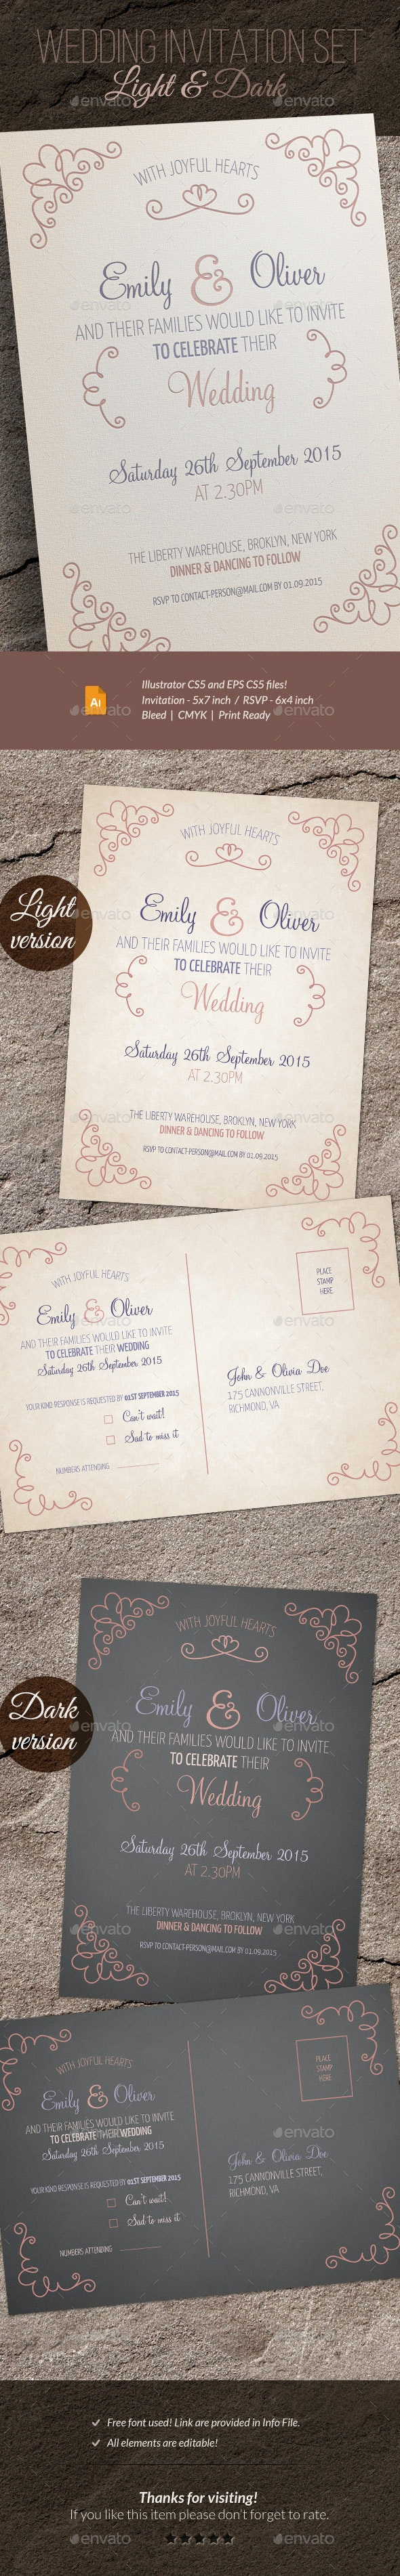 Wedding Invitation and RSVP - Weddings Cards & Invites